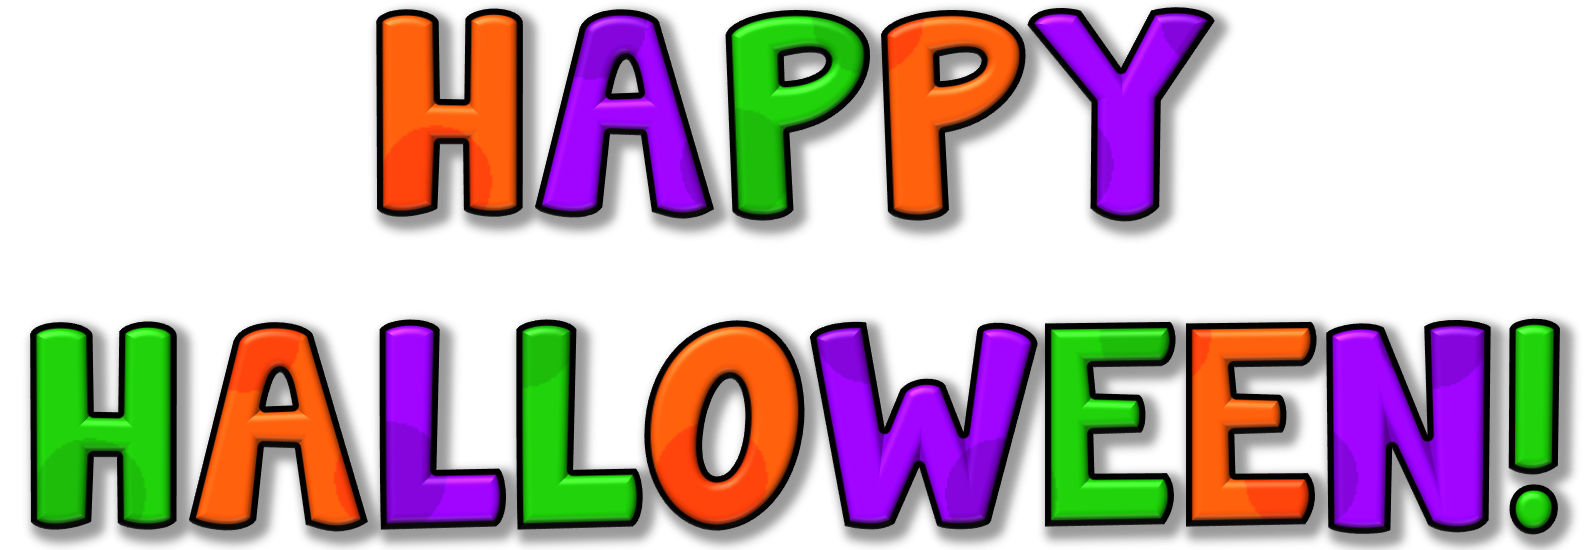 Photo clipart halloween. Search for drawing at